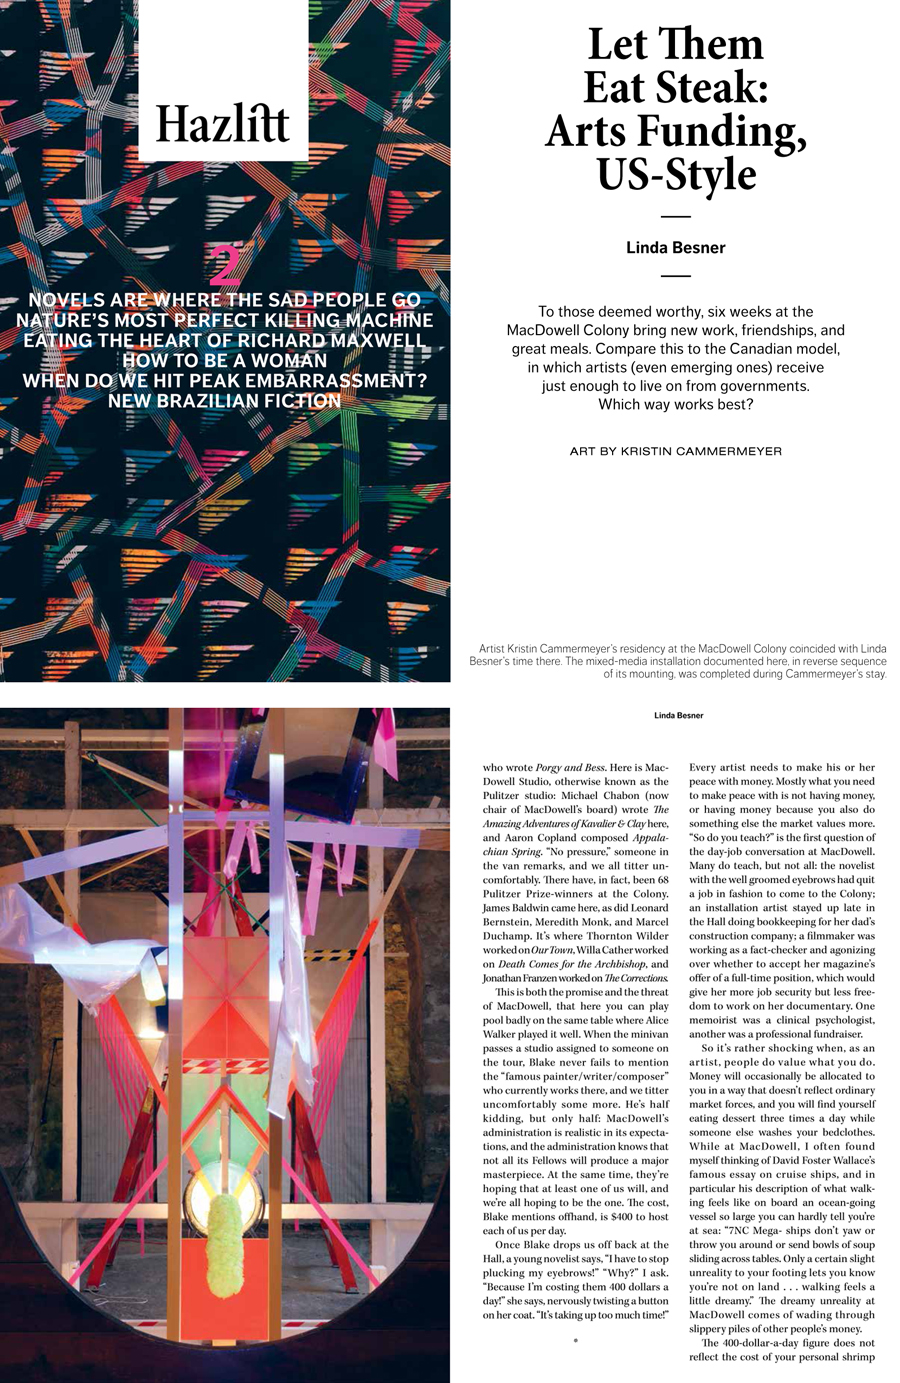 FEATURED ARTIST > HAZLITT NO. 2, PRINT EDITION (SUMMER 2014) I am very pleased to be included in Hazlitt No. 2 as an accompaniment to Linda Besner's essay on The MacDowell Colony and arts funding. It features time lapse images of the production of the installation I produced while at MacDowell. Hazlitt No. 2 is available for purchase HERE.